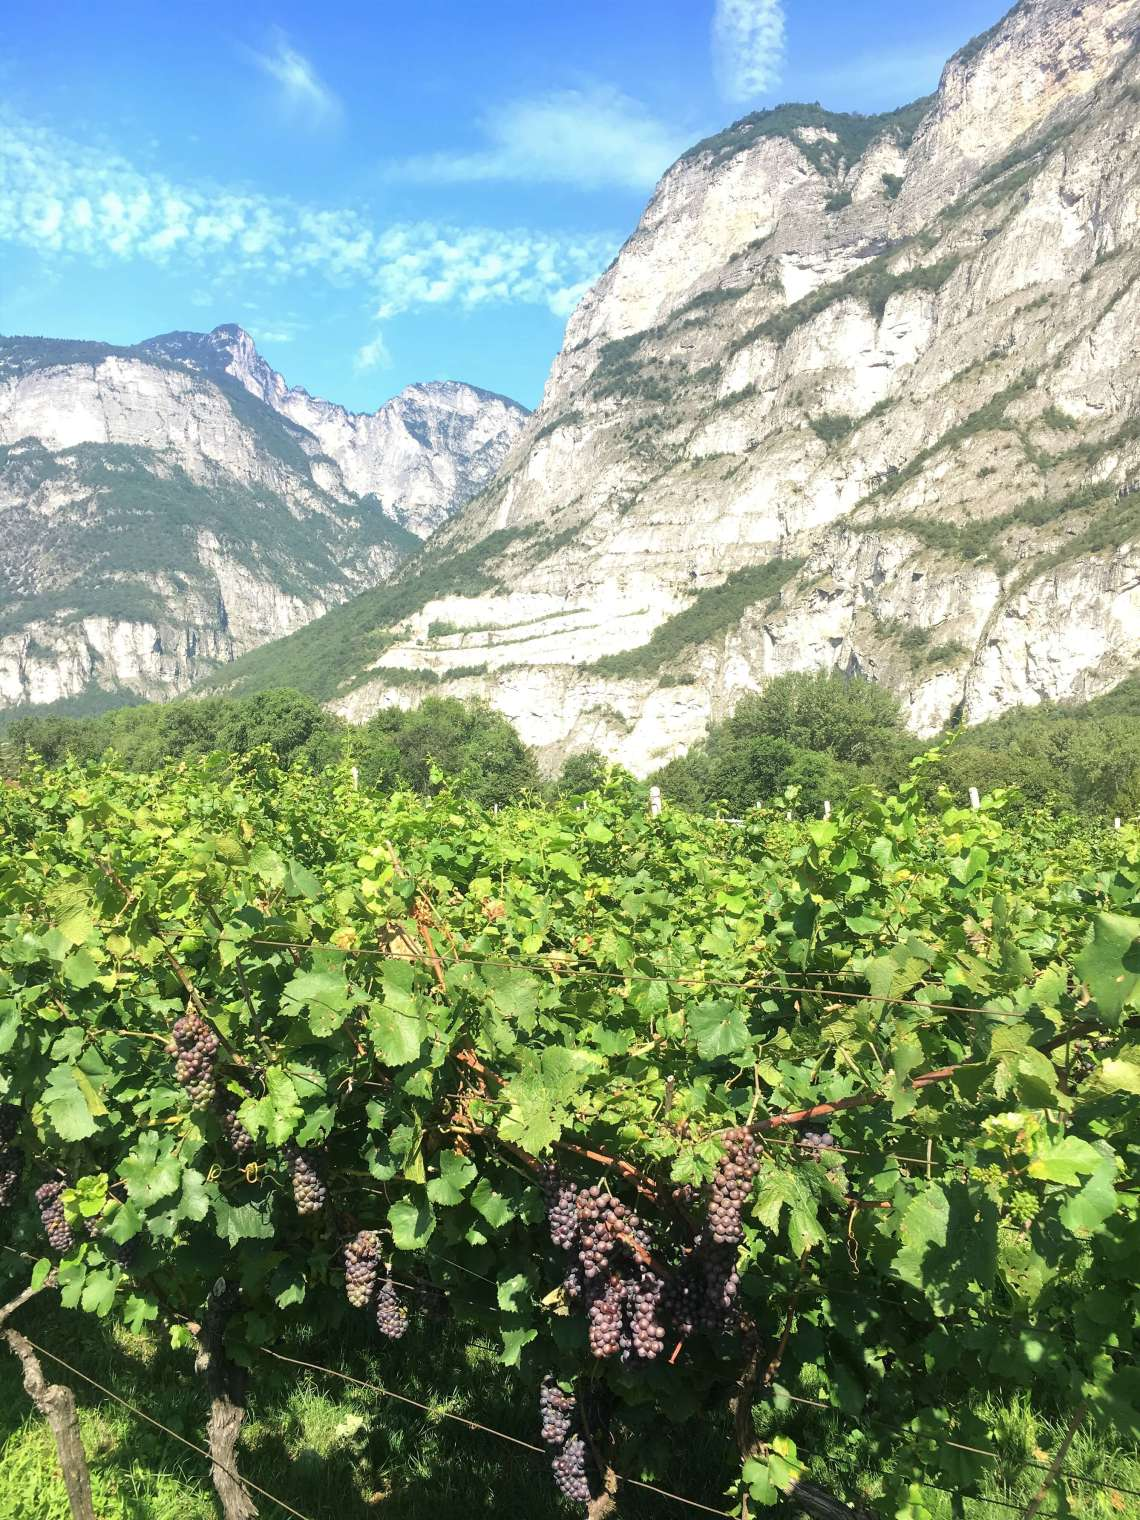 The extreme heat and dry climate this year may give Italian wine producers a reduction in grapes and wine this year. But perhaps may it lead to better wine?